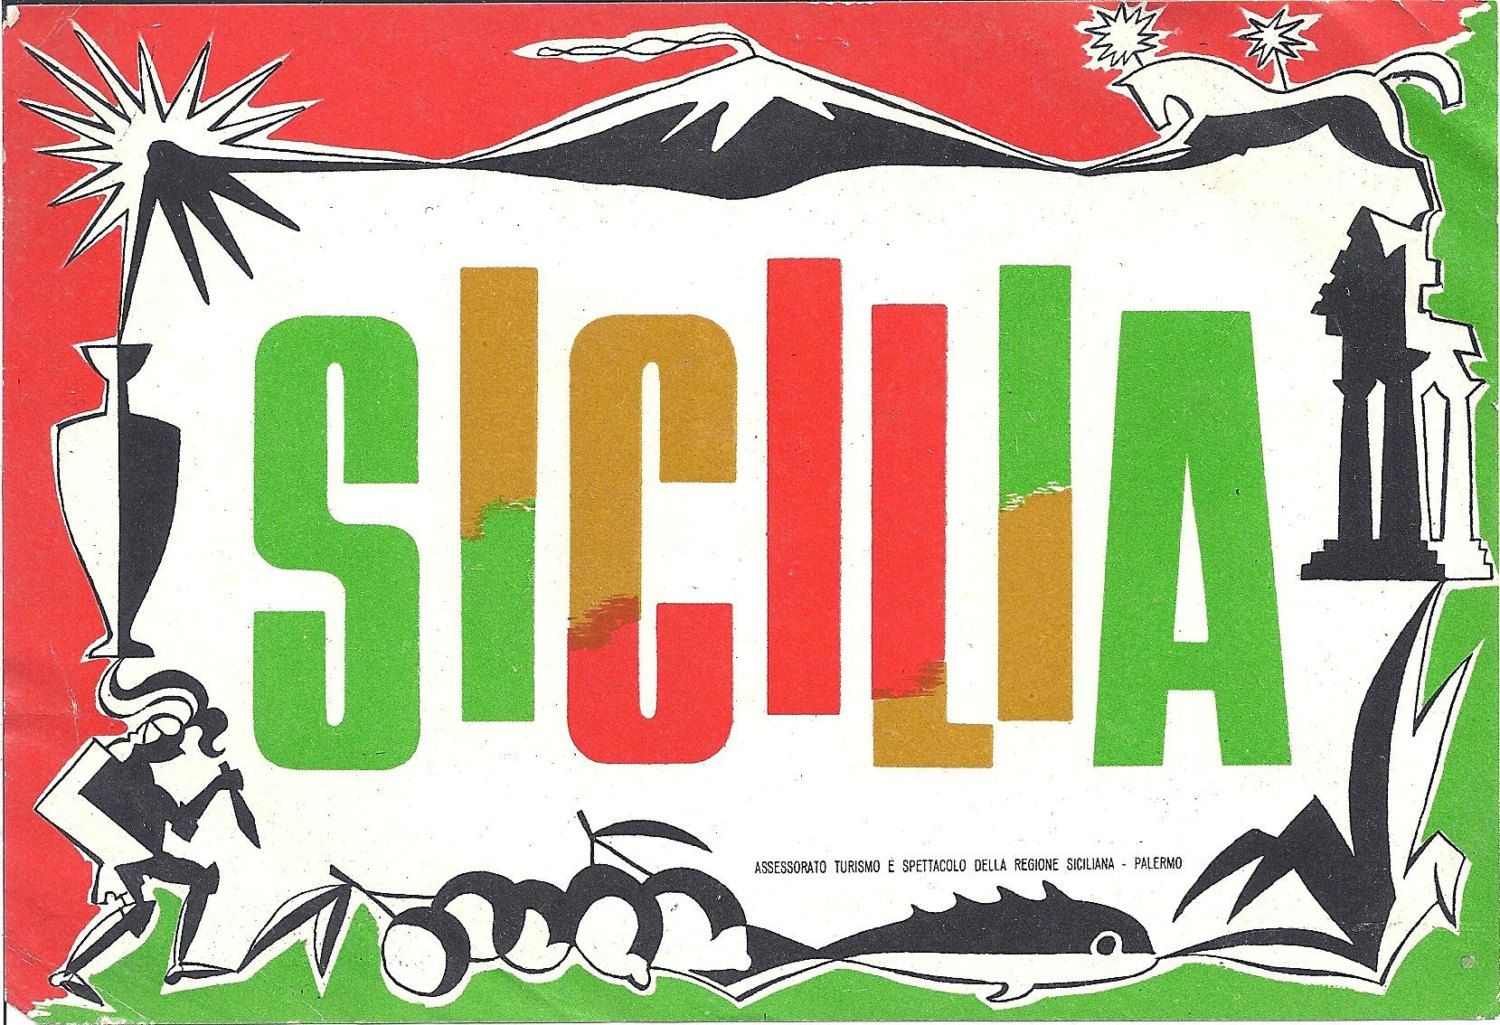 Travel decal sticker tourist luggage Italy Sicily Sicilia by Assemblager on Etsy